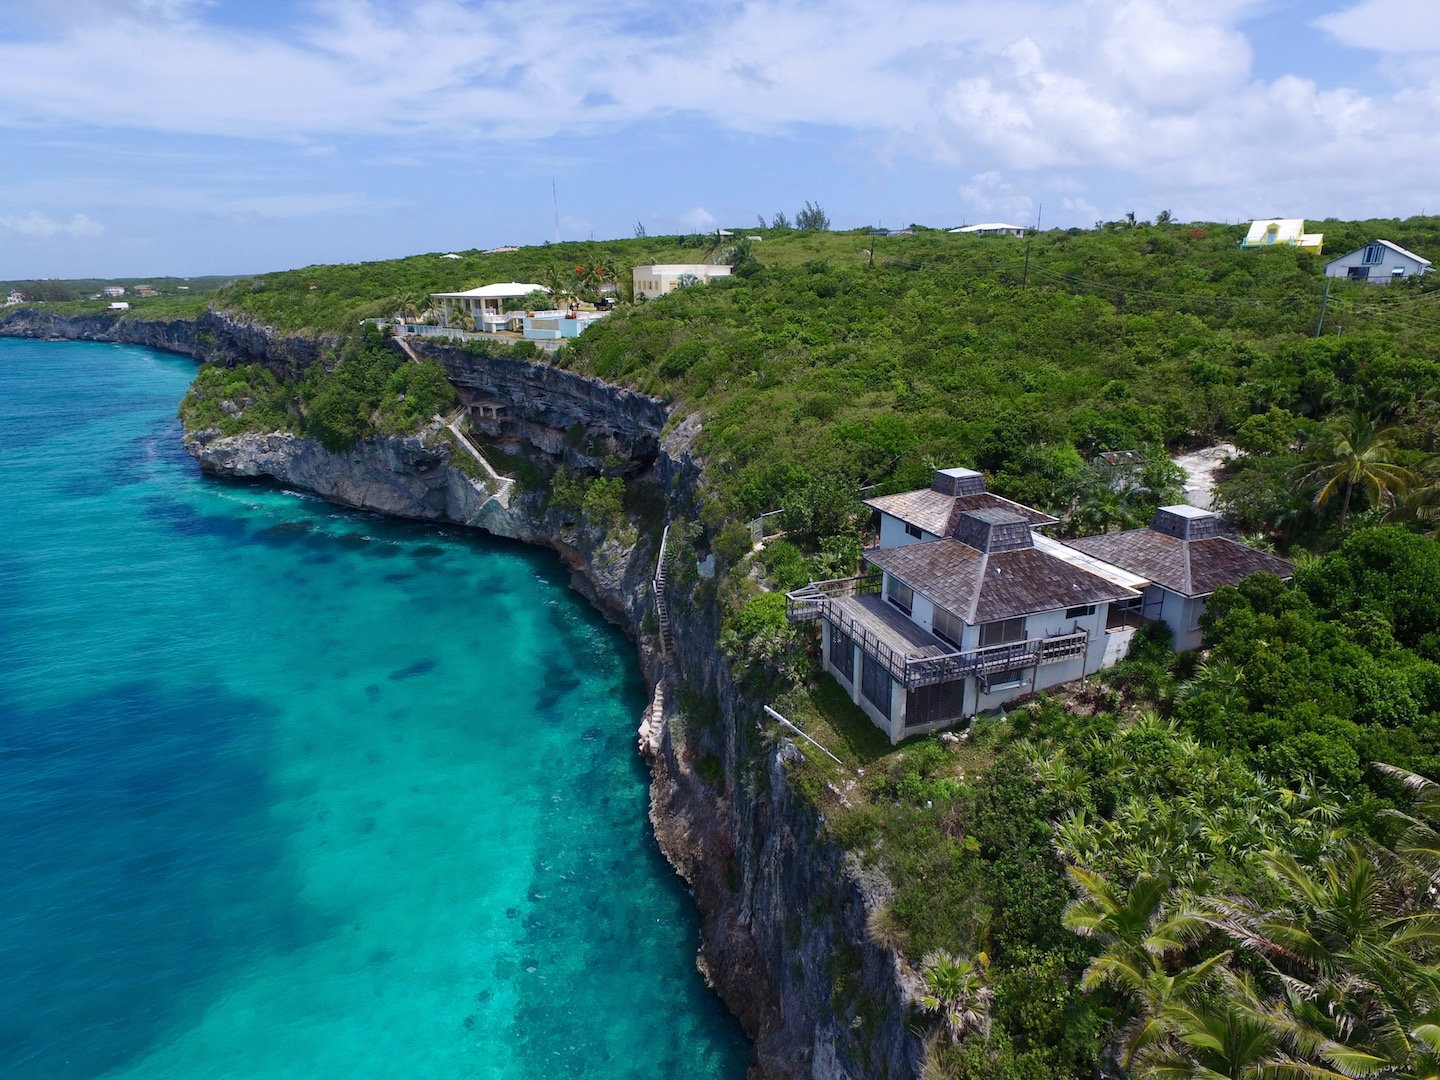 Single Family Home for Sale at A Majestic View with Timeless Appeal Eleuthera Island Shores, Gregory Town, Eleuthera Bahamas